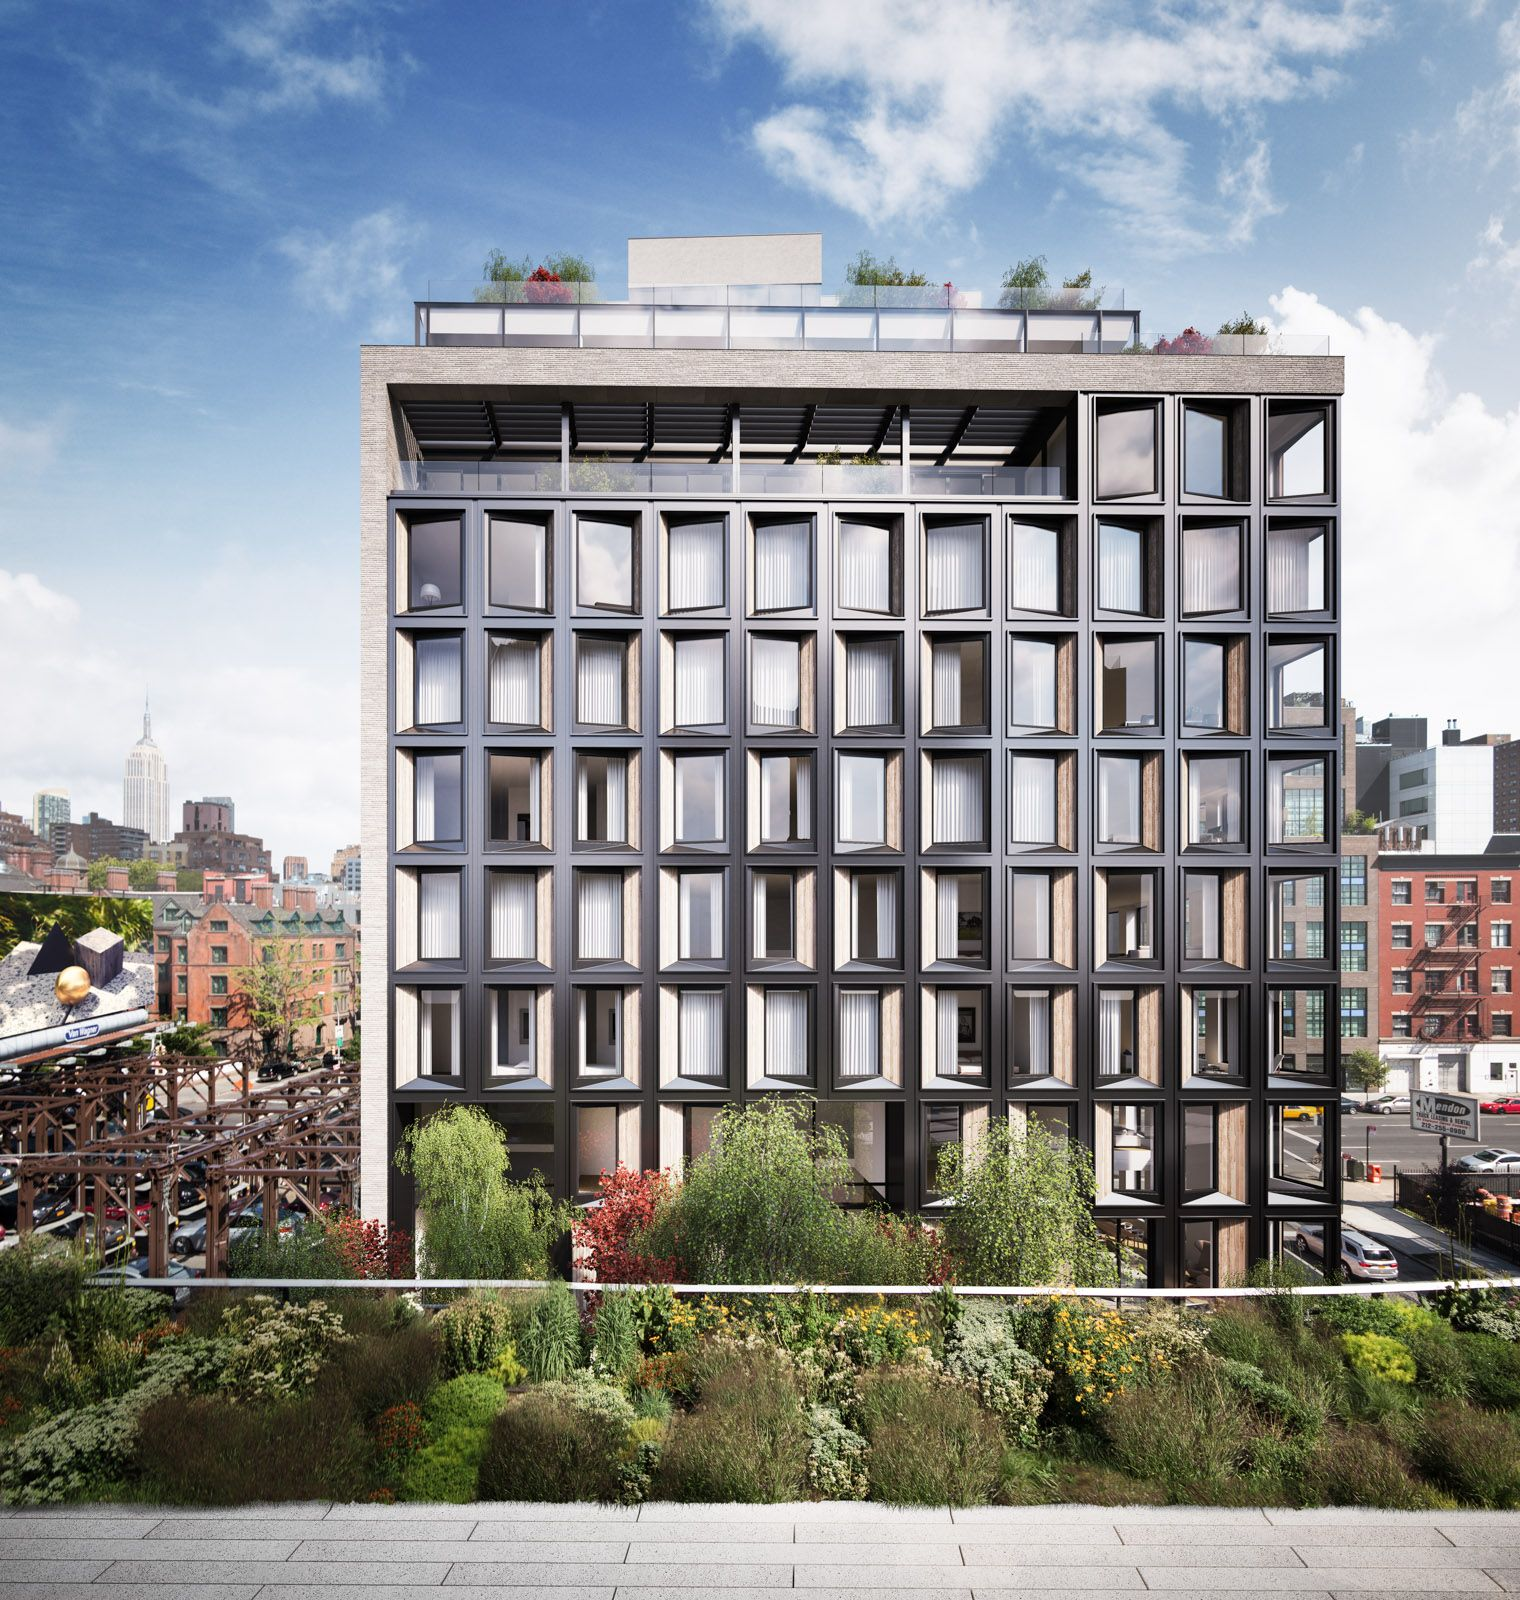 Apartment Vs Condo: 505 West 19th Street Offers A Mixture Of One- To Five